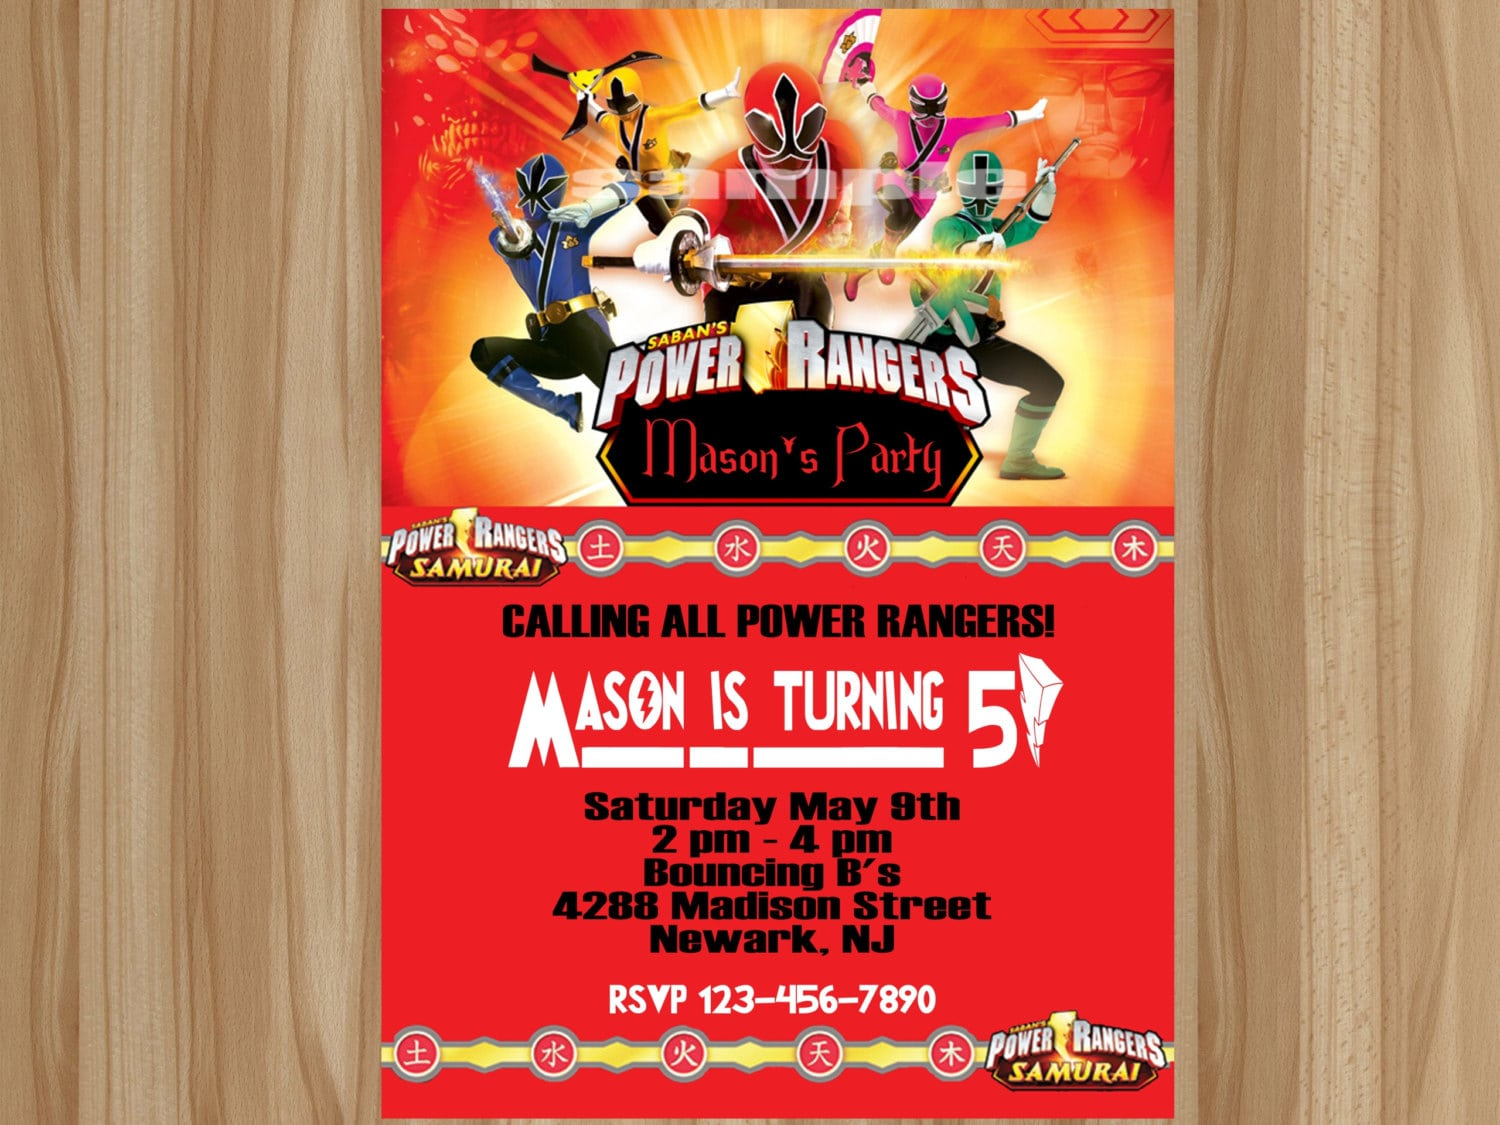 Appealing Power Ranger Birthday Invitations Which Can Be Used As